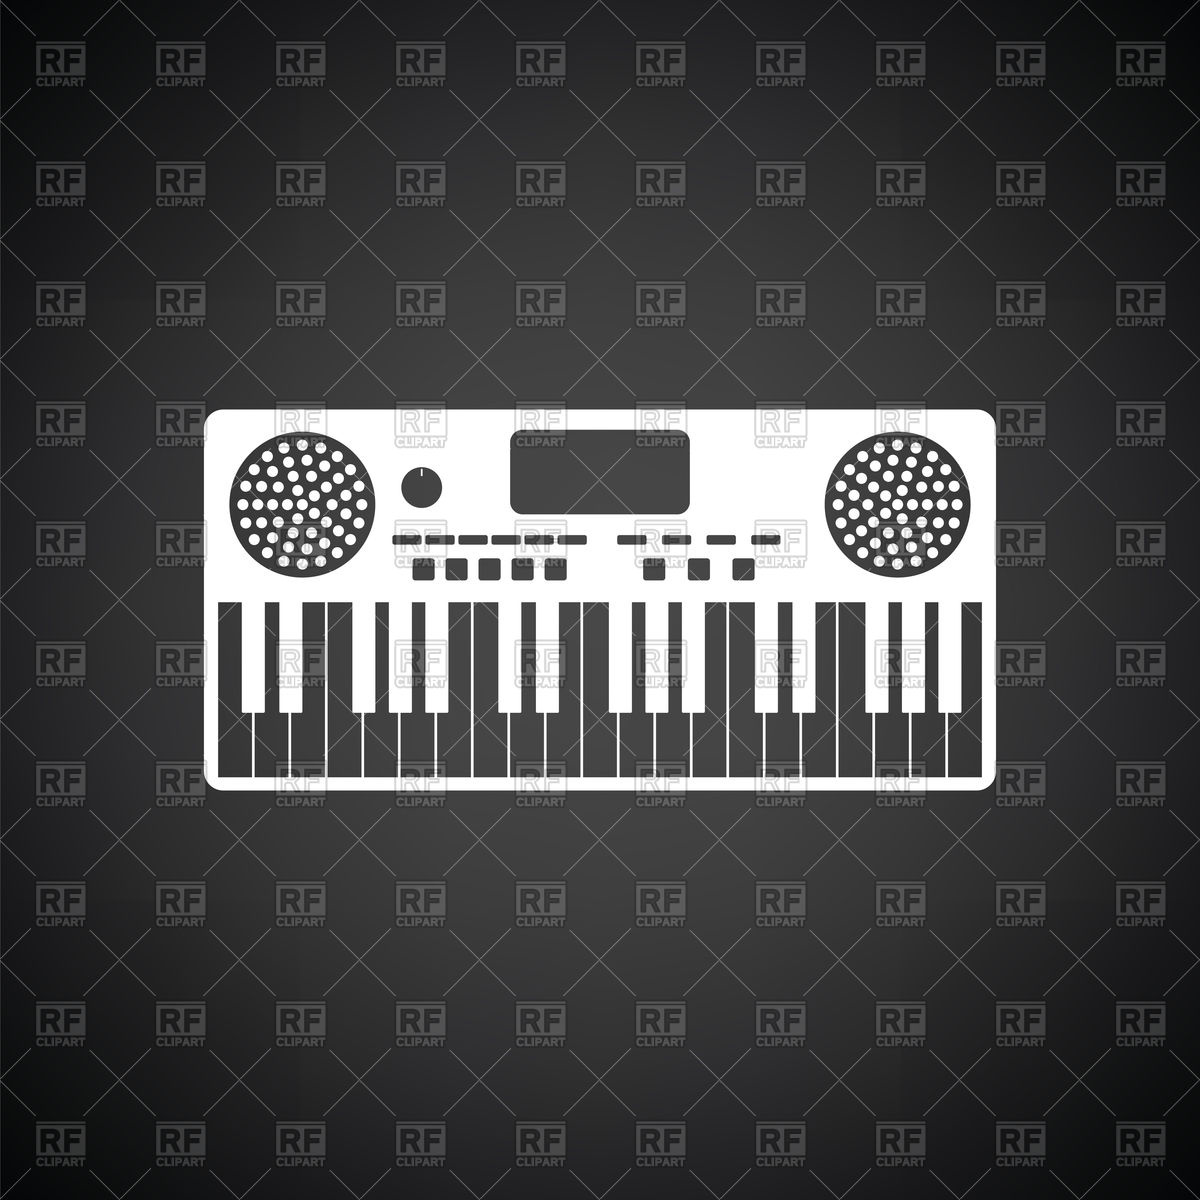 Music synthesizer icon on black background Vector Image of Icons 1200x1200